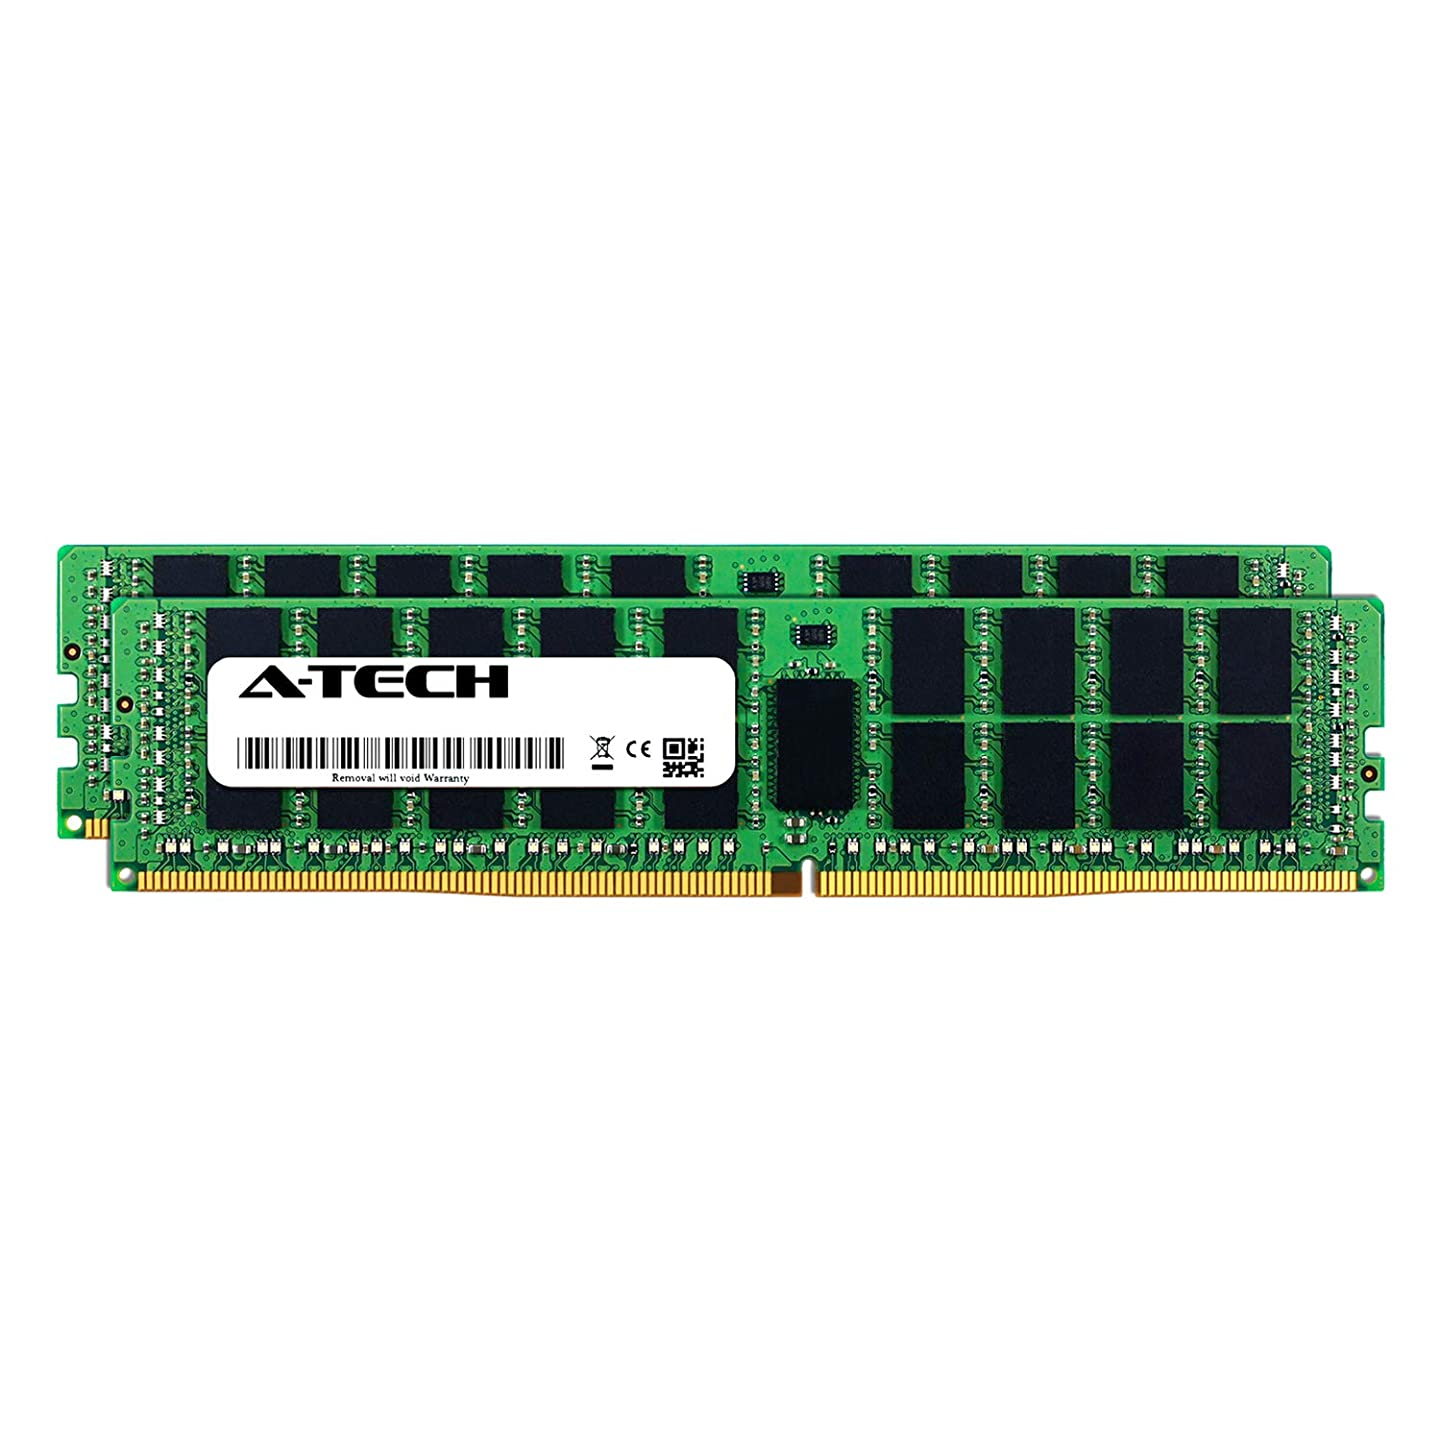 A-Tech 16GB Kit (2 x 8GB) for Dell Precision 5820 (Intel Xeon Models) - DDR4 PC4-21300 2666Mhz ECC Registered RDIMM 1Rx8 - Server Memory Ram Equivalent to OEM A9781927 SNP1VRGYC/8G (AT316775SRV-X2R4)